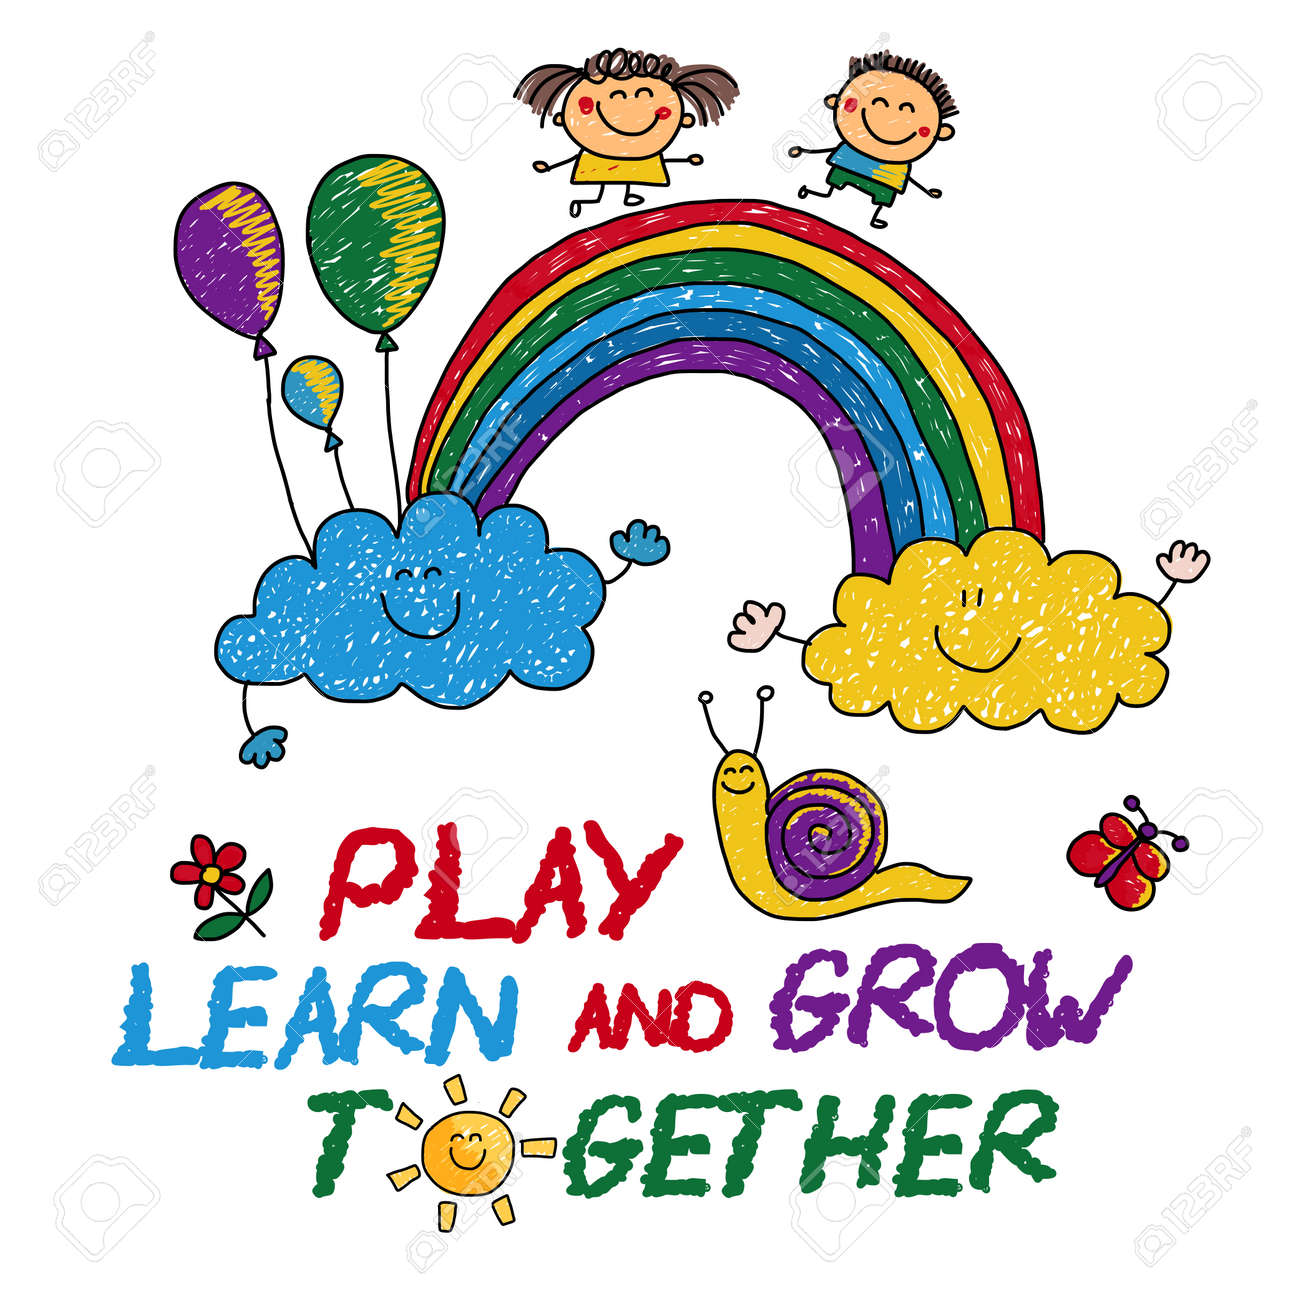 Play Learn and grow together Hand drawn vector image - 63063065